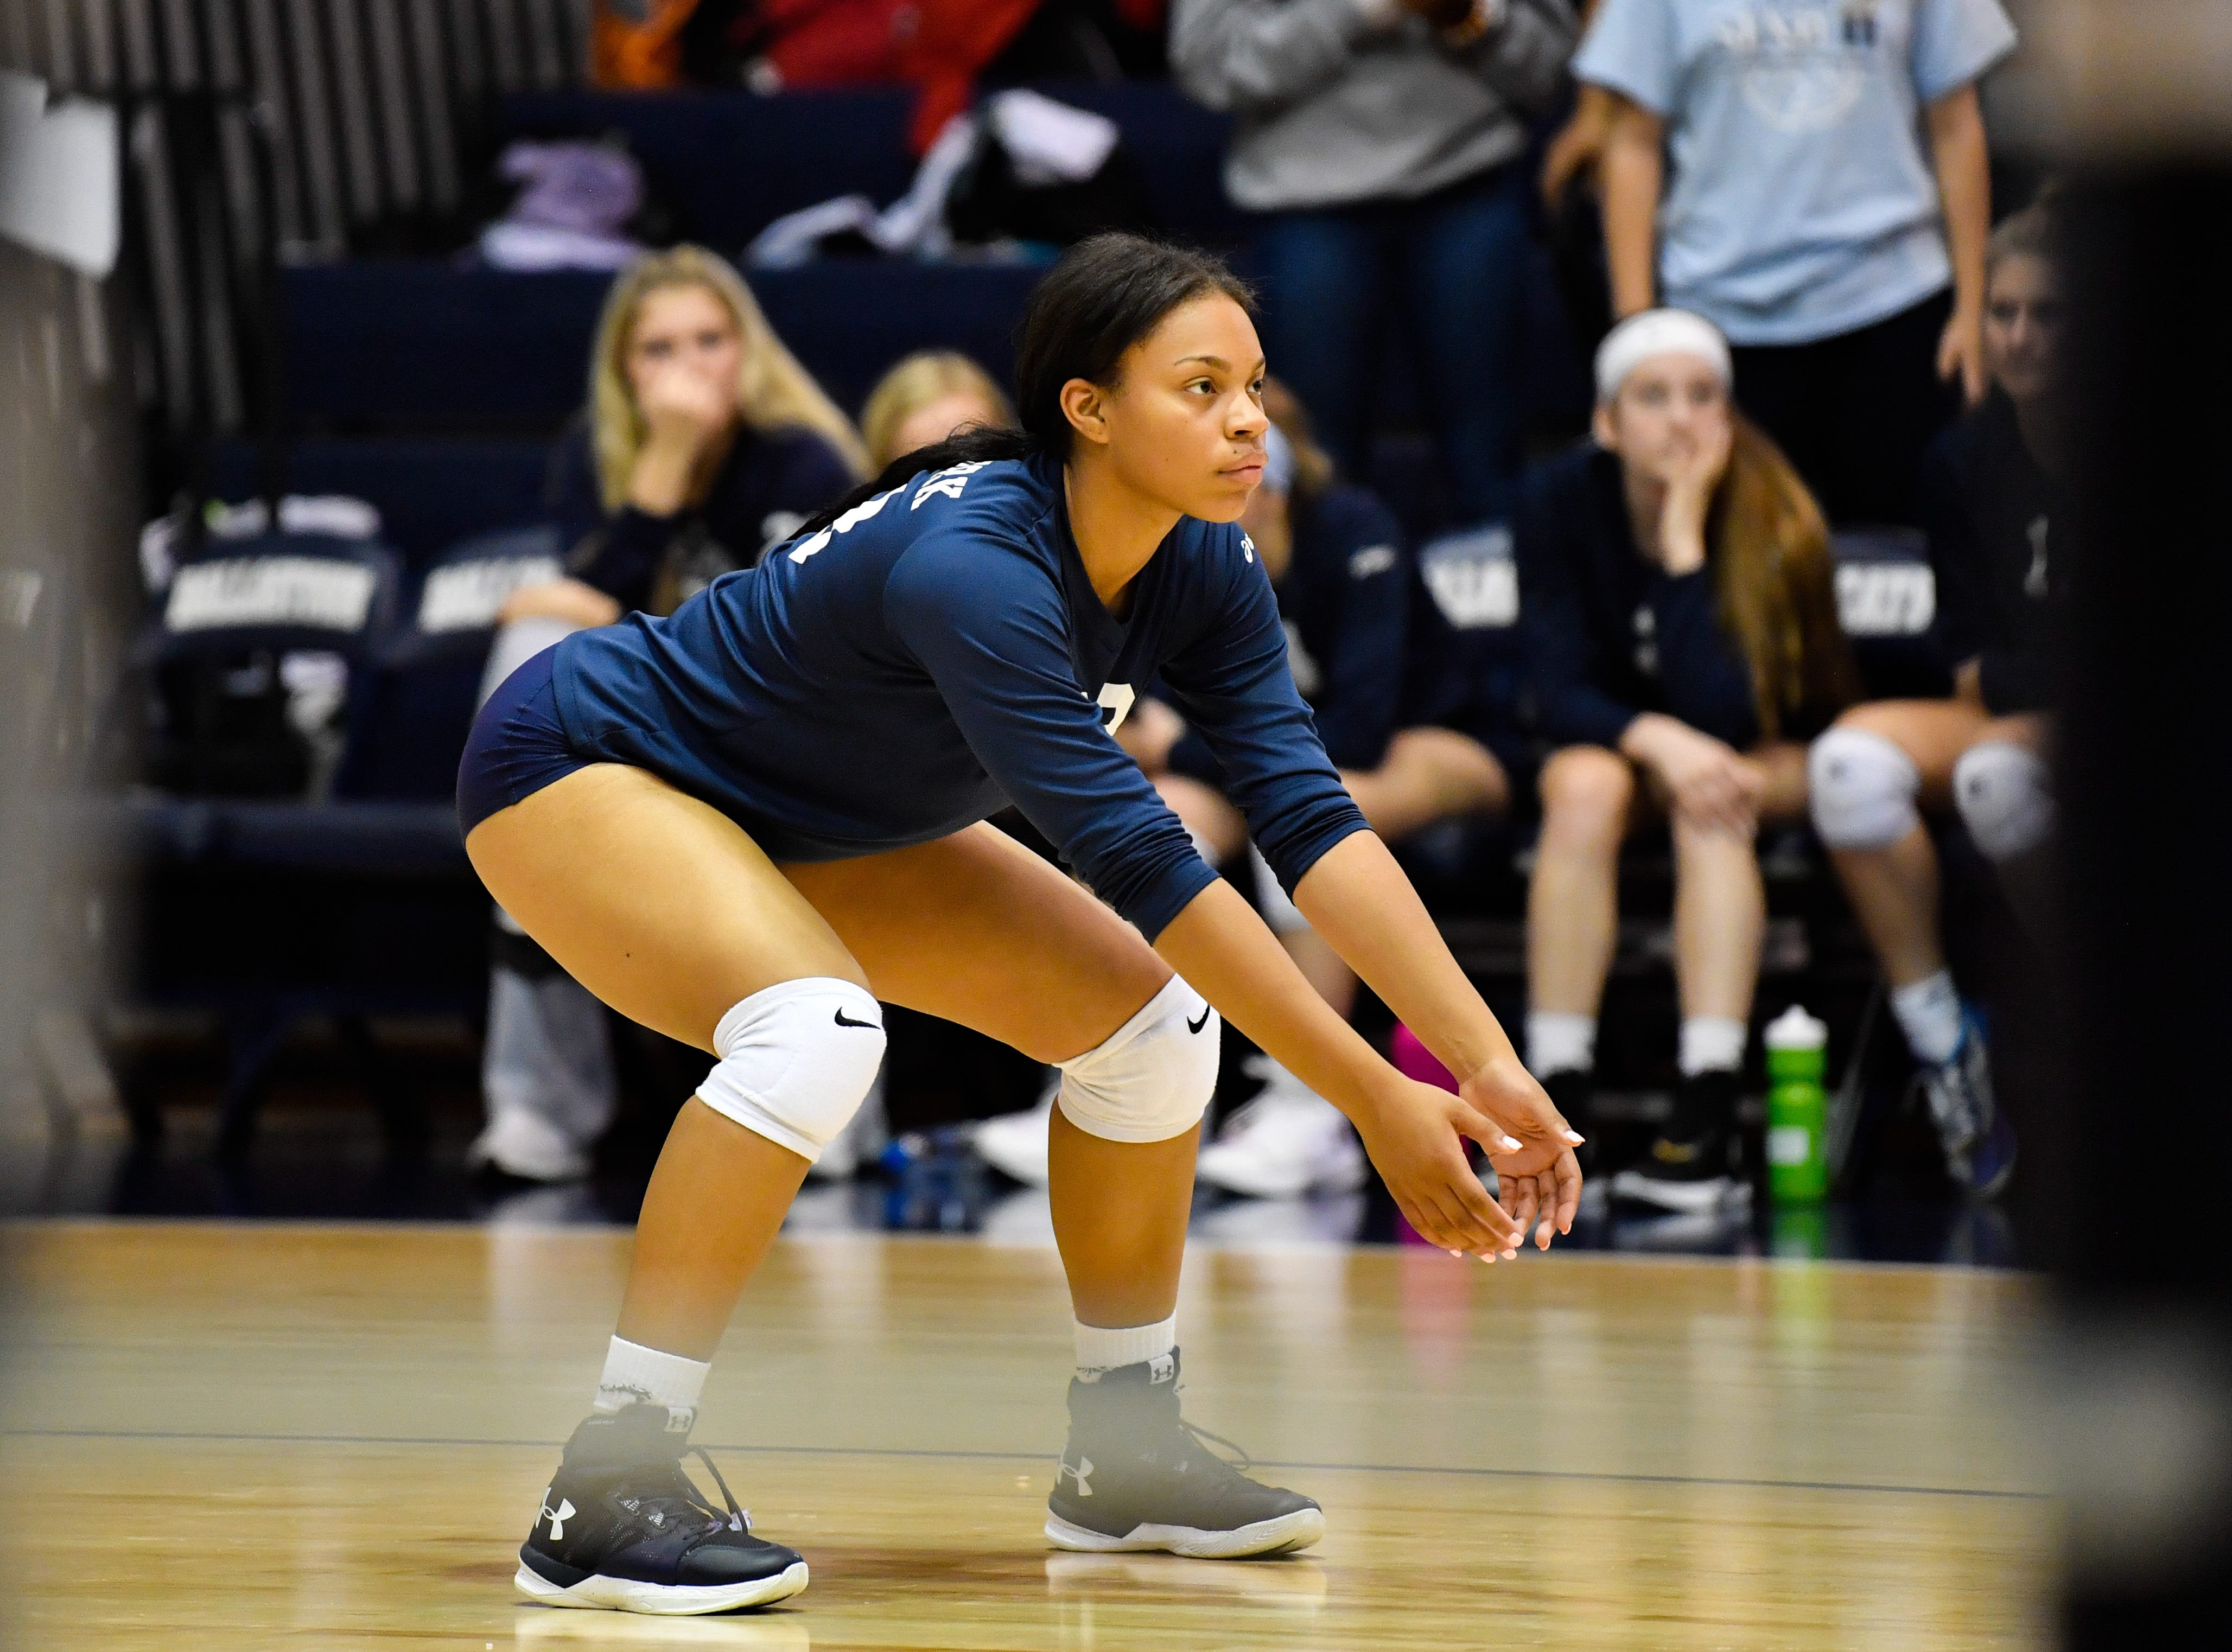 Alayna Harris (23) gets into her stance during the YAIAA league volleyball tournament semifinals between West York and Dover, Tuesday, October 23, 2018. The Bulldogs defeated the Eagles 3-1.